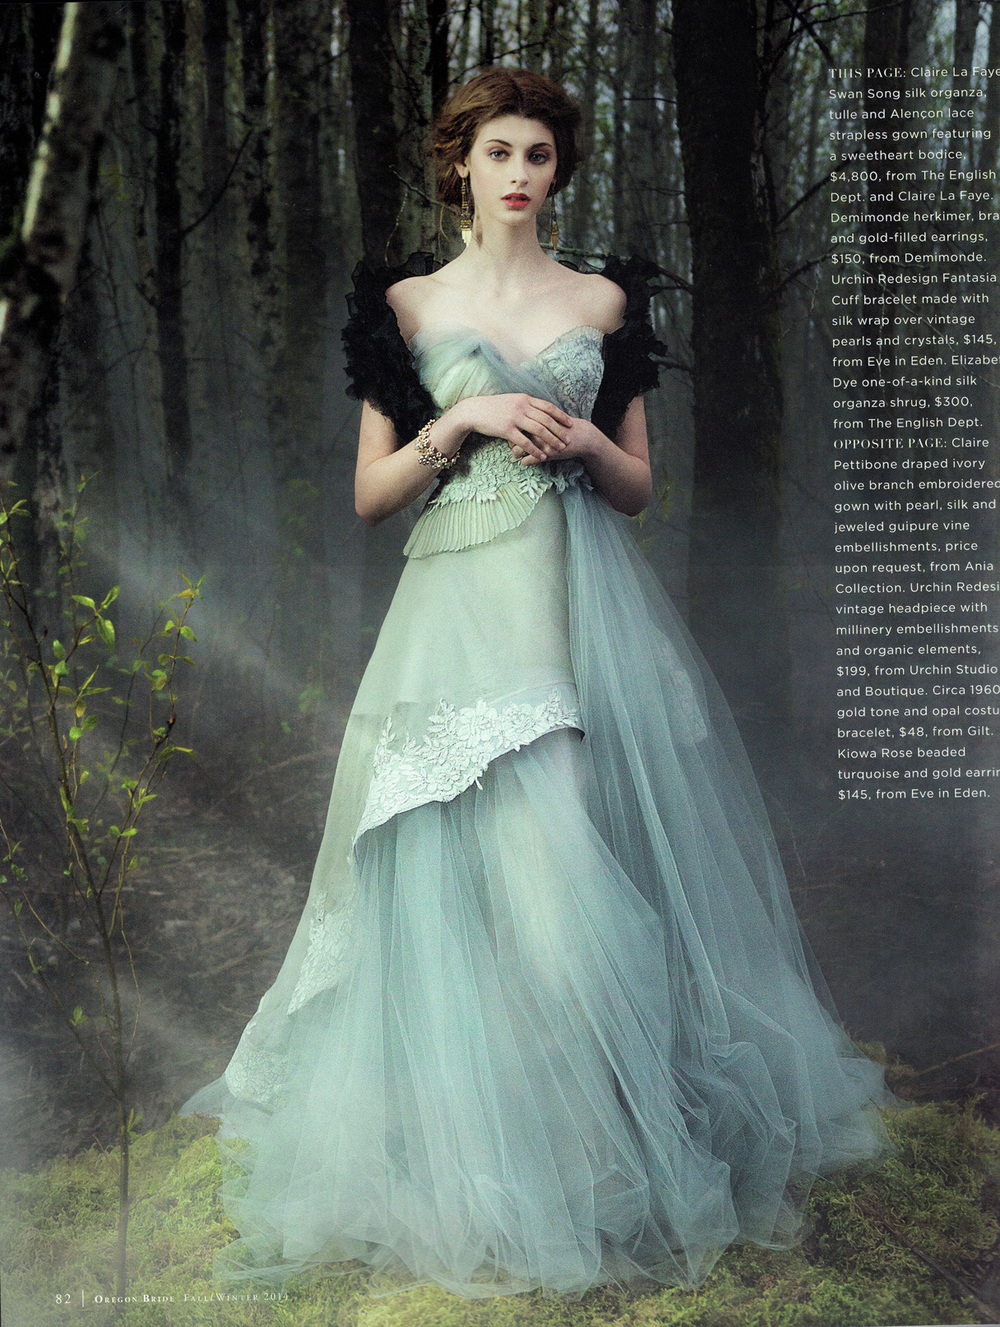 Oregon Bride-Fall/Winter 2014